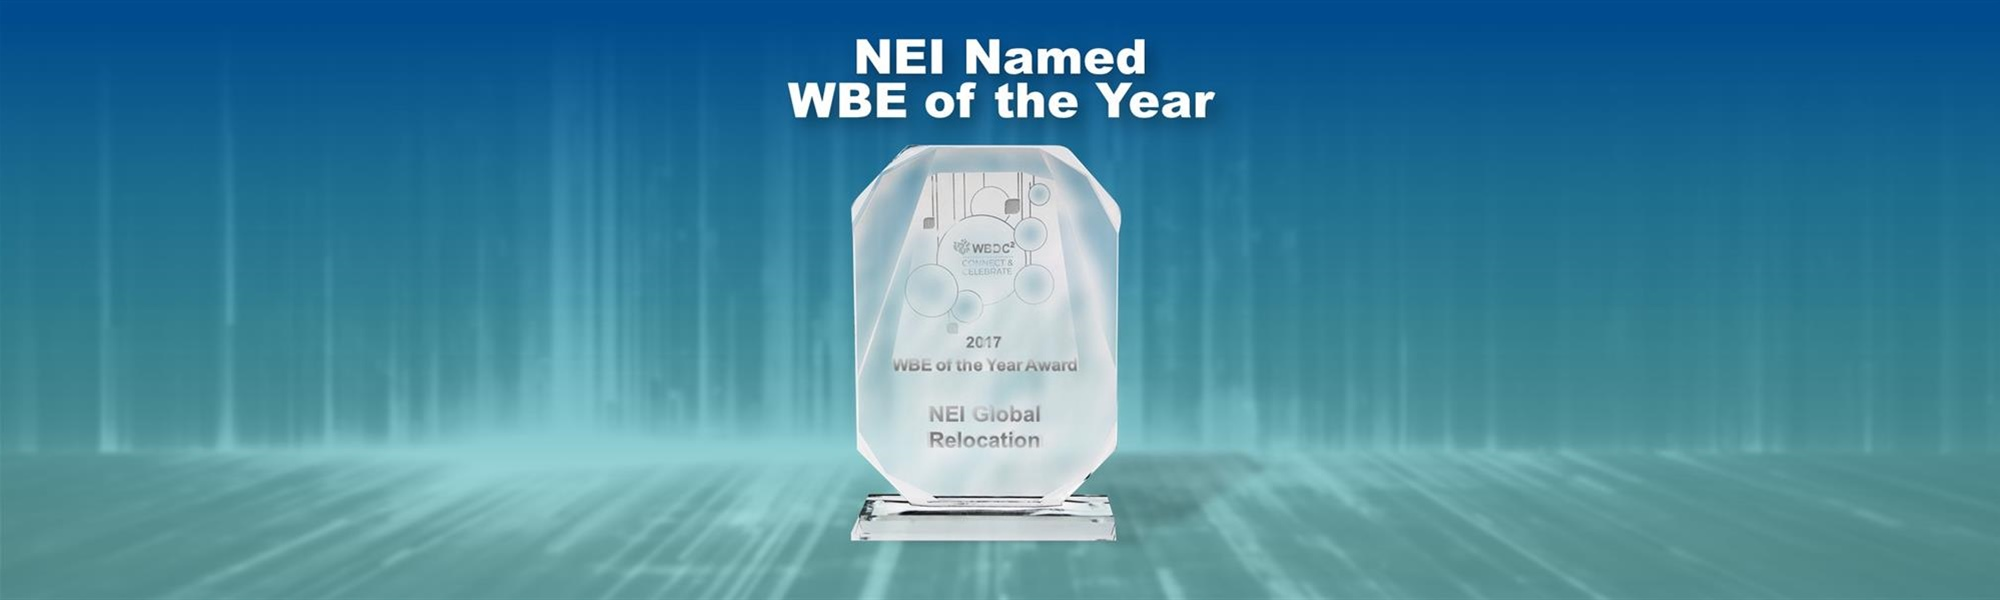 NEI Global Relocation Named WBE of the Year